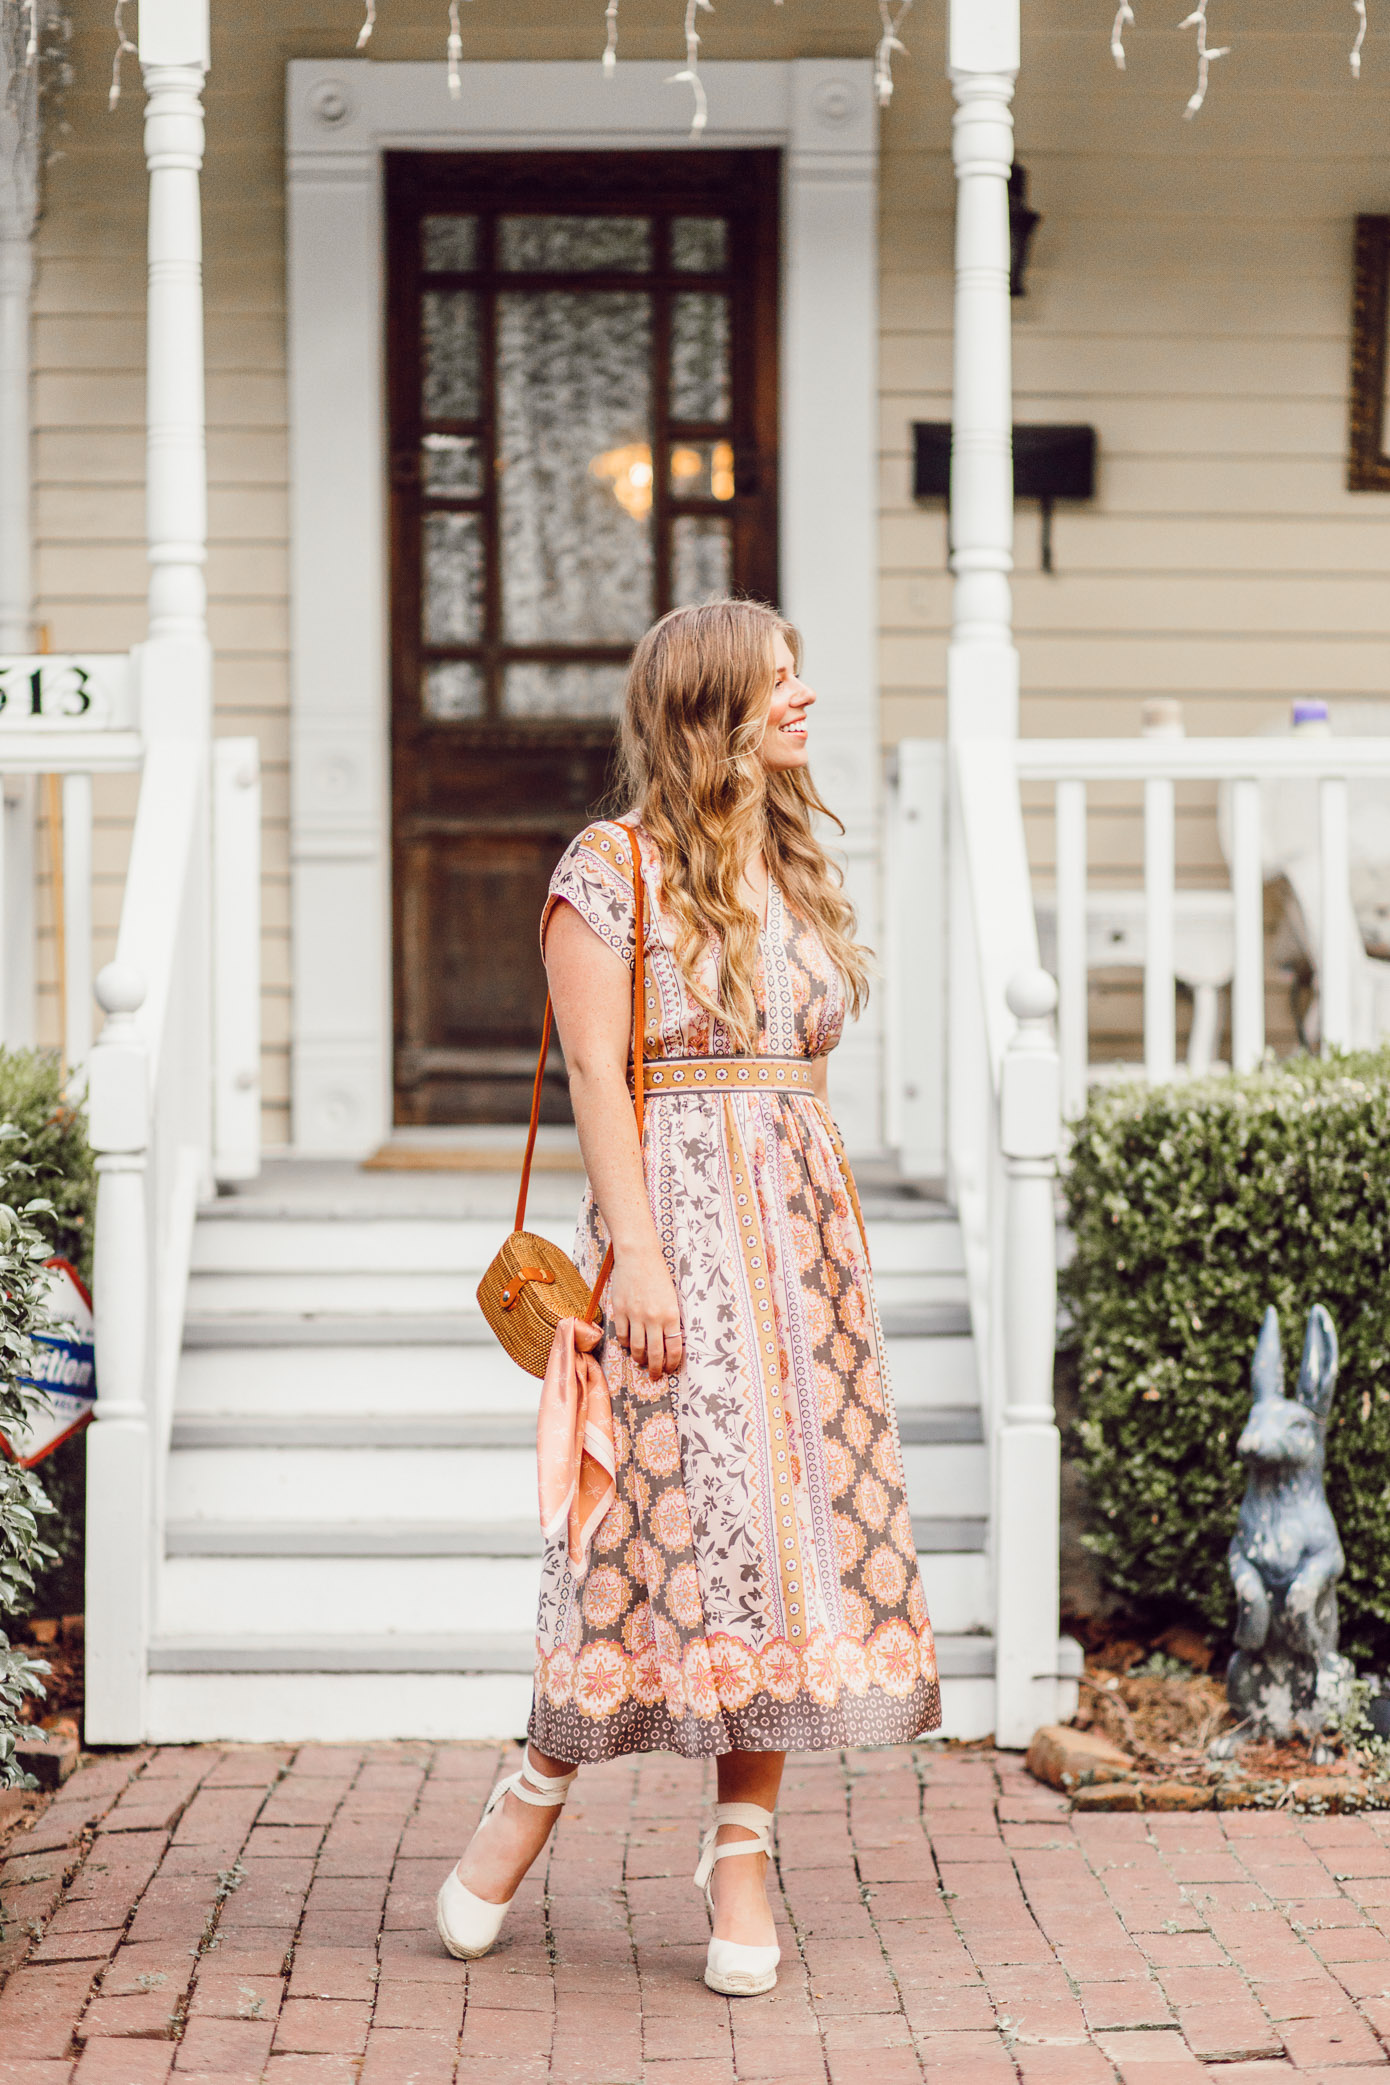 Fall Midi Dresses | The Perfect Midi Dress for Fall on Louella Reese #falldresses #mididress